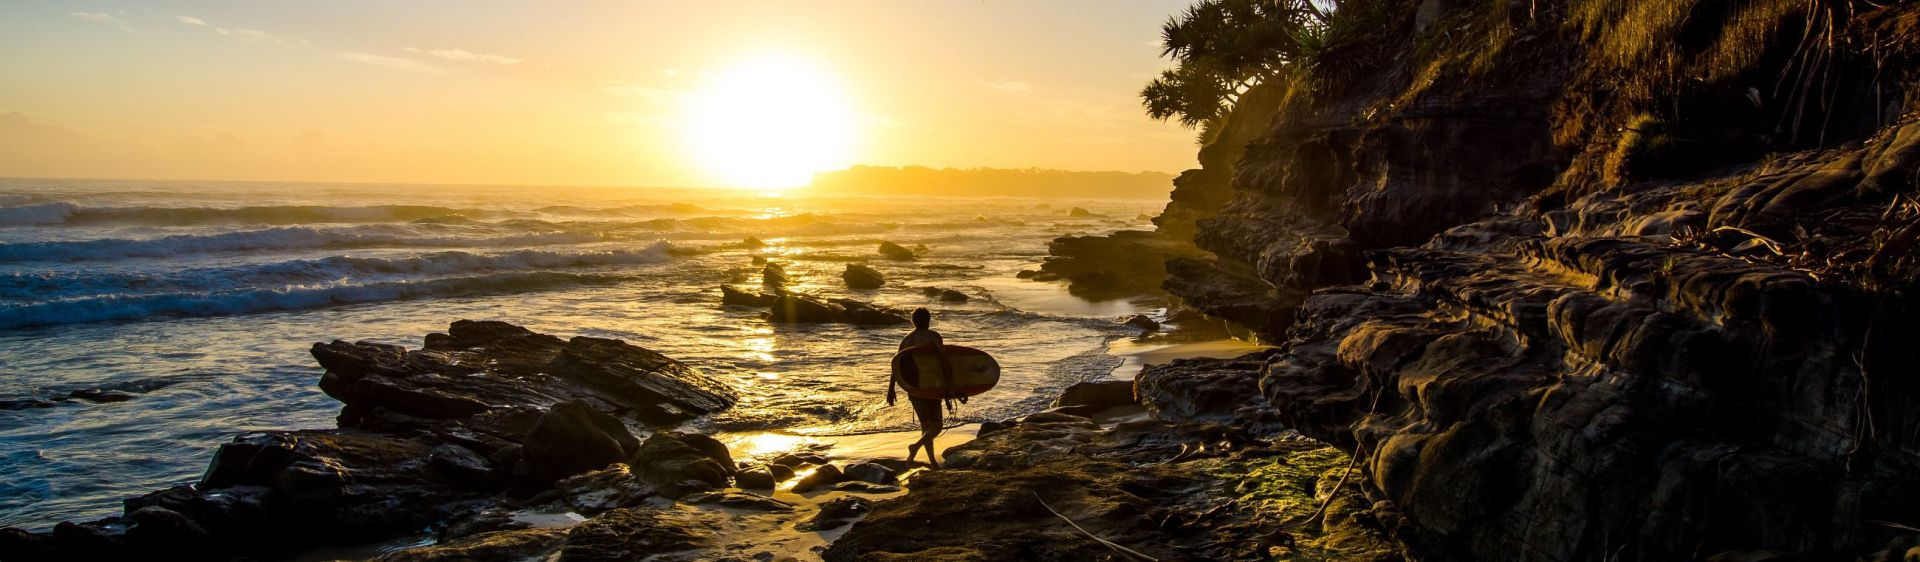 A surfer walks at sunrise on Chinamans Beach, Evans Head